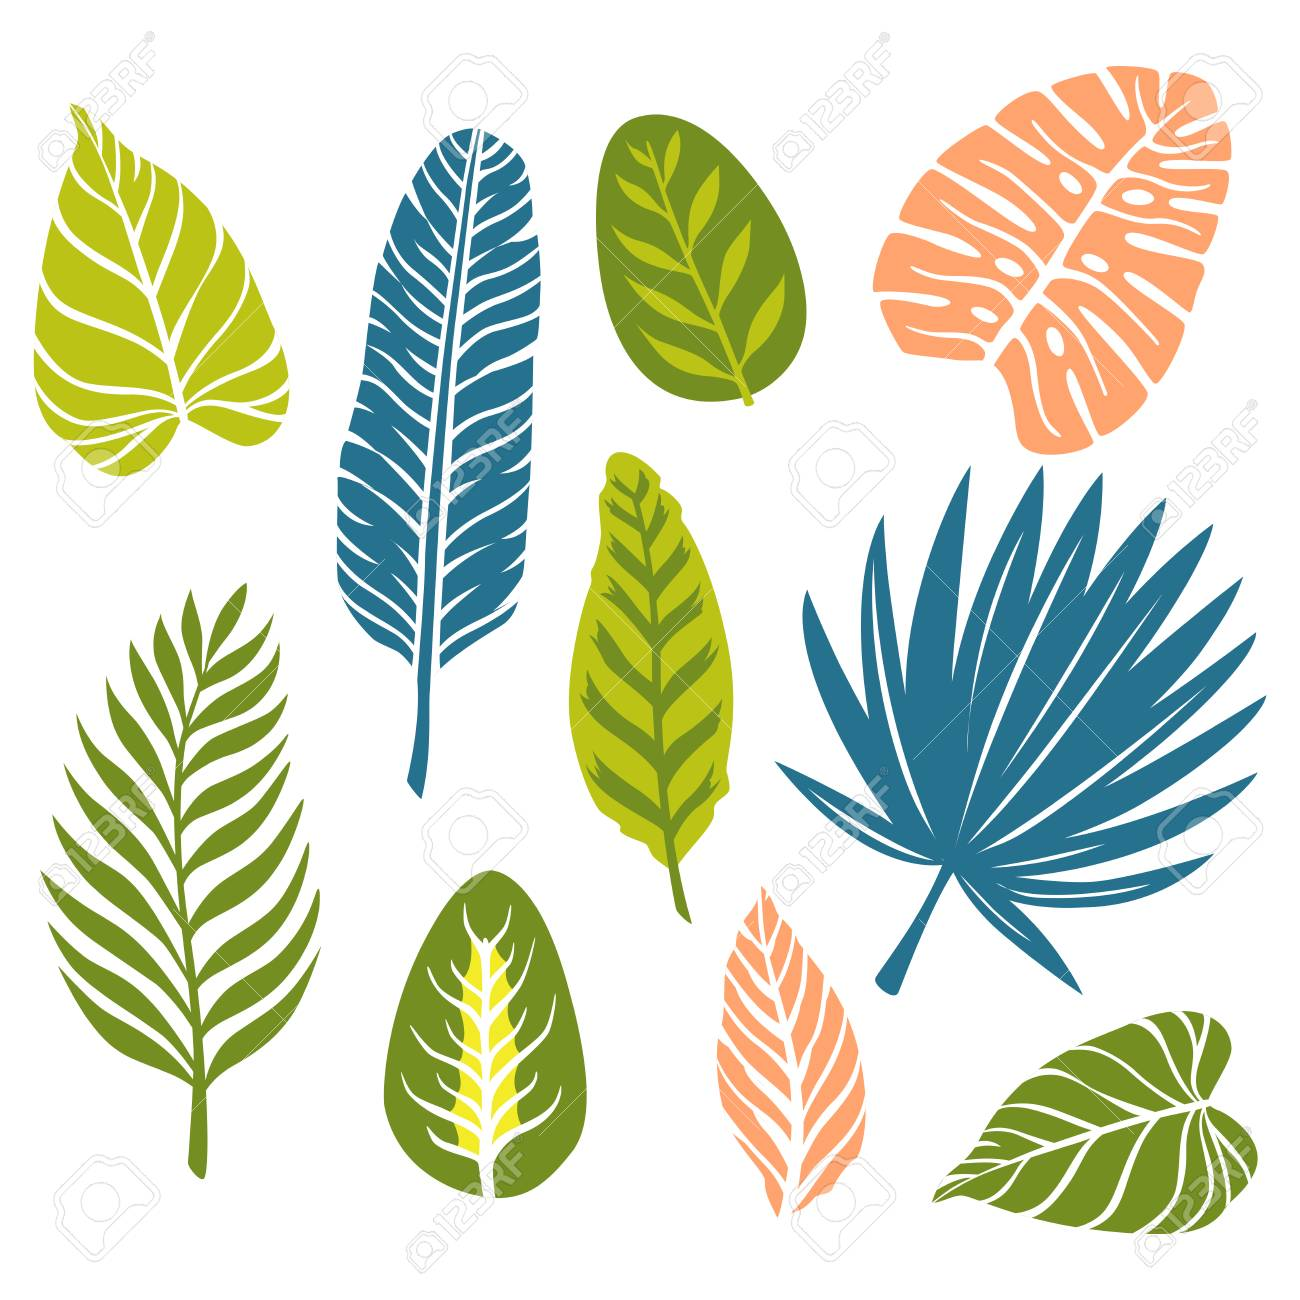 Set Of Hand Drawn Doodle Tropical Leaves Vector Illustration Royalty Free Cliparts Vectors And Stock Illustration Image 106753852 A set of 28 beautifully hand drawn tropical floral elements in black. set of hand drawn doodle tropical leaves vector illustration